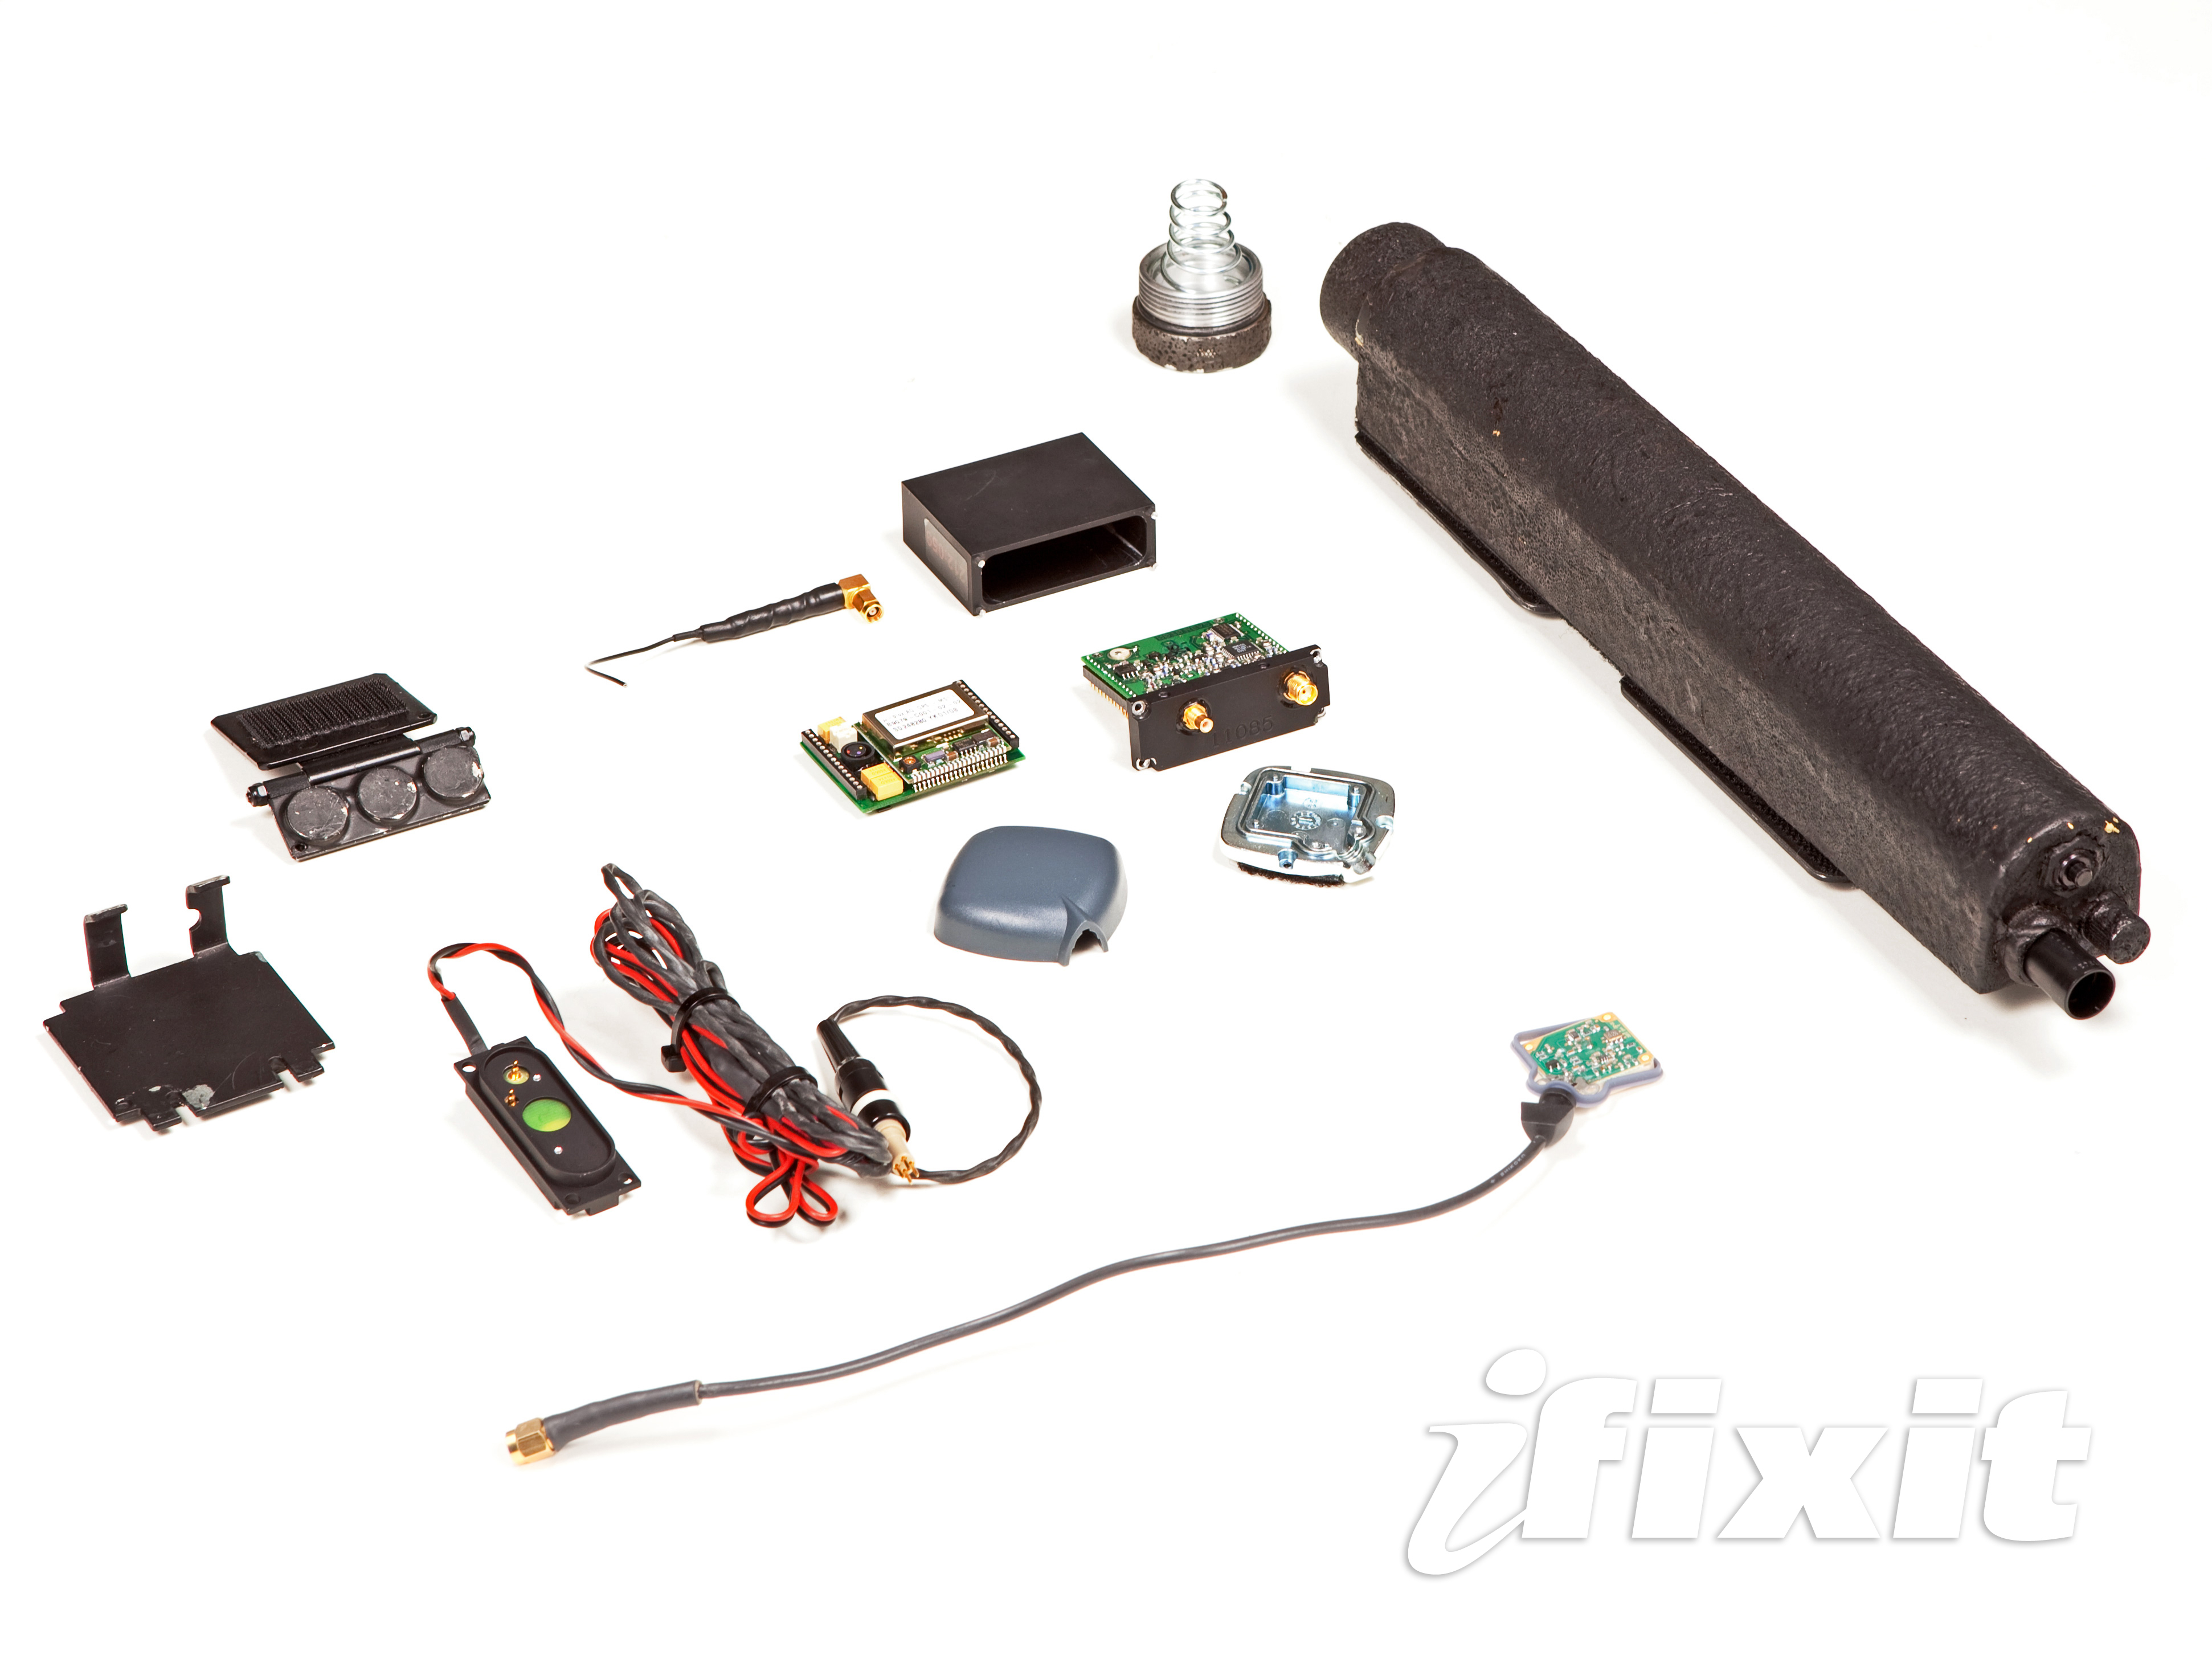 FBI Tracker Looks Like A Pipe Bomb